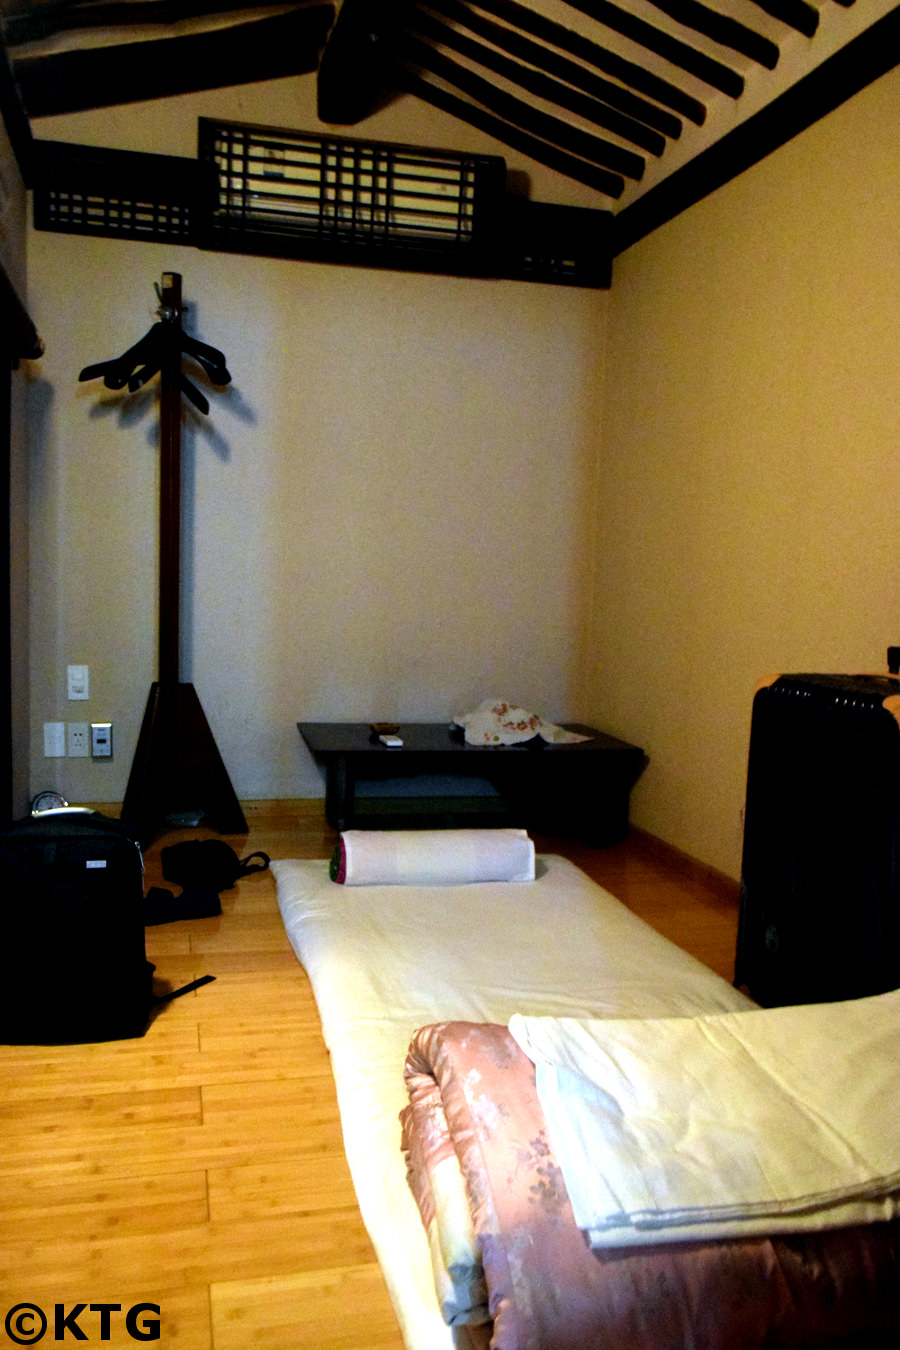 Room at the Minsok Hotel in Kaesong. We sleep on a thick mattress on heated floor. The floor is heated by an ondol system in typical Korean traditional style. Picture taken by KTG Tours